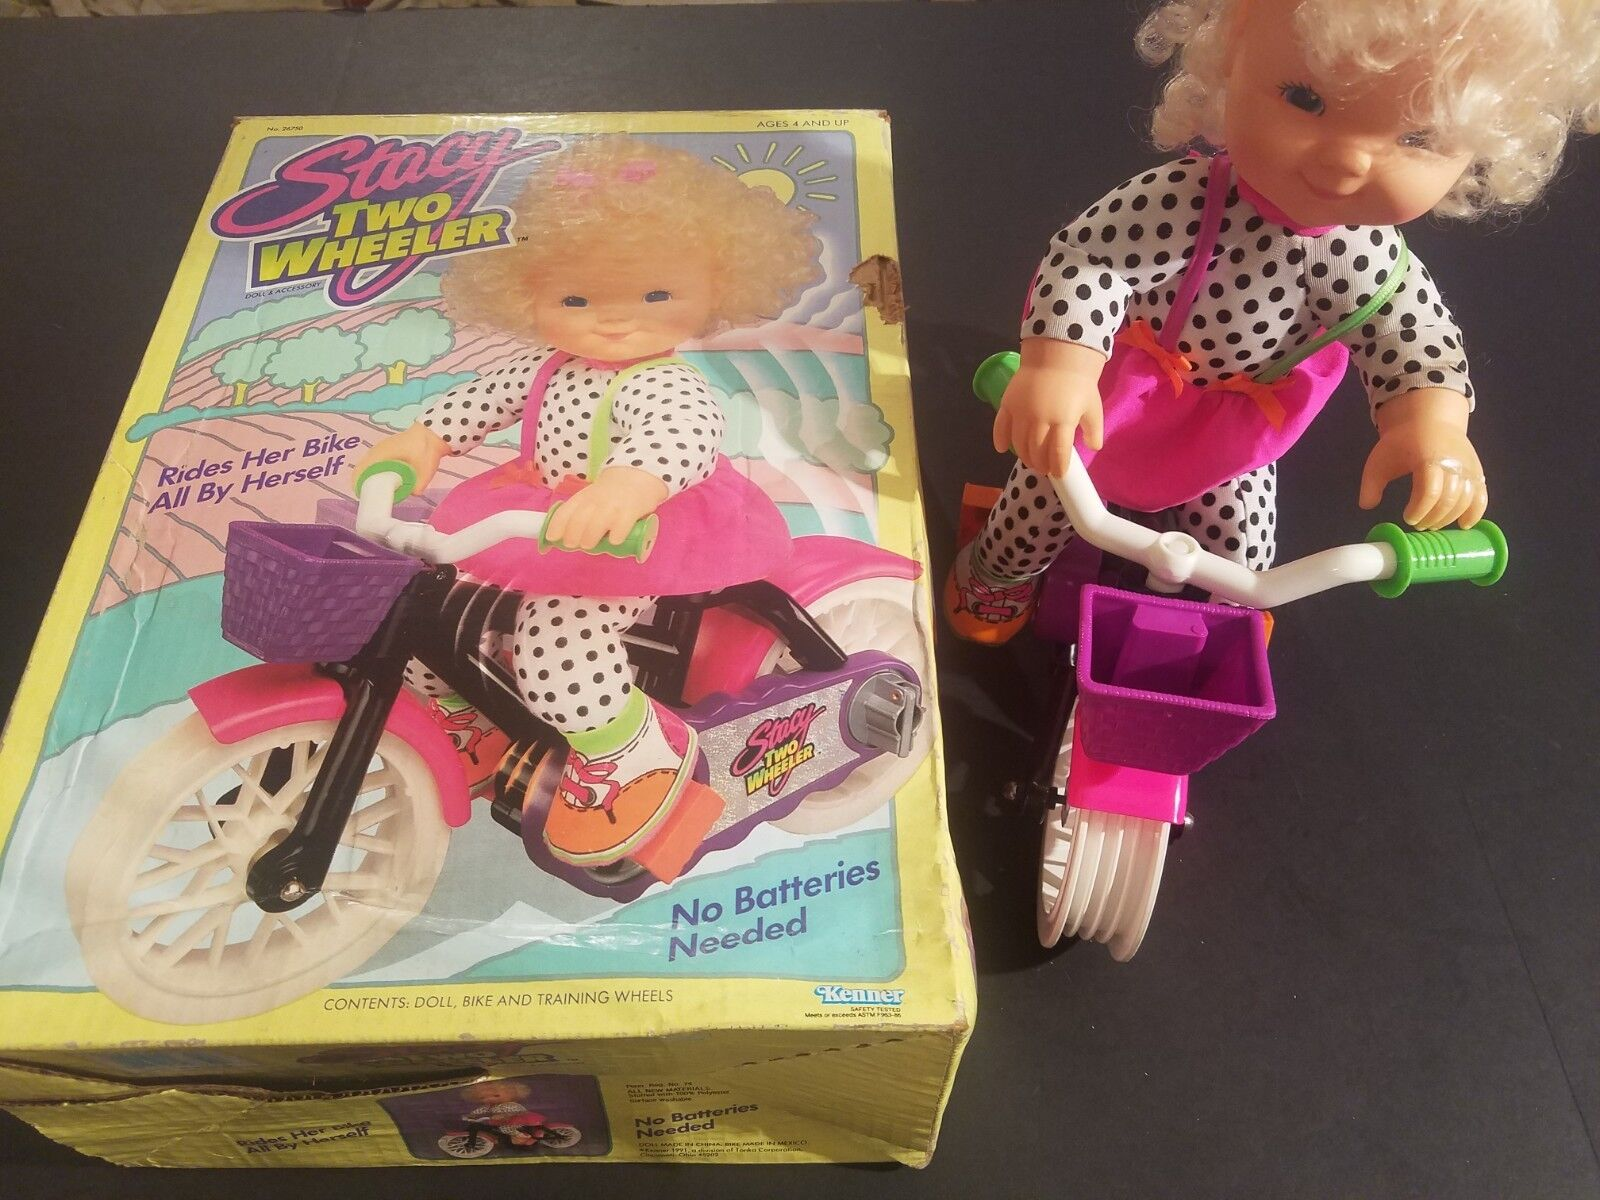 Vintage 1991 Kenner Stacy Dos Wheeler Muñeca en Caja Doll-Bike-Training Ruedas